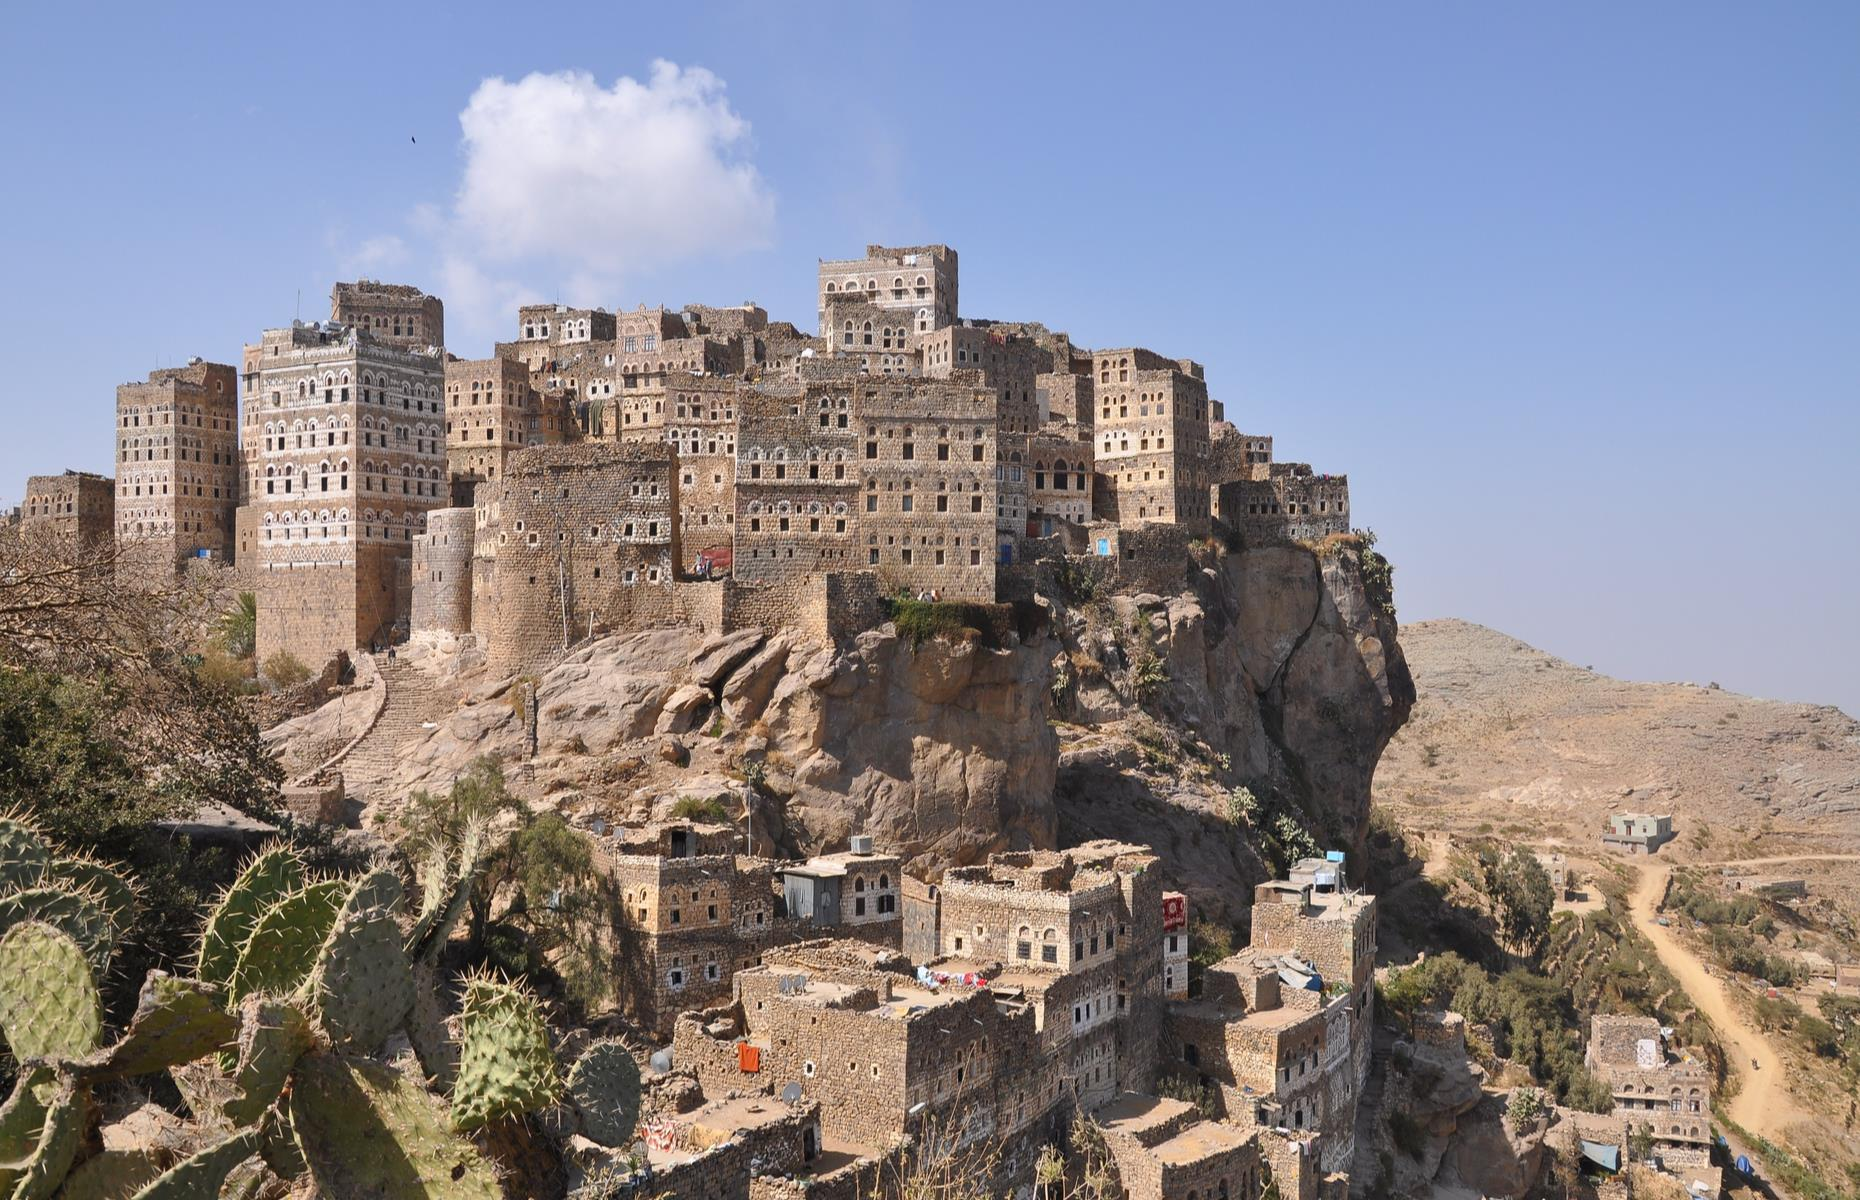 Slide 27 of 31: A cluster of towering houses built on an overhanging rocky crag in the Manakhah district of Yemen, Al-Hajjarah was founded in the 12th century and served as an important fortification during the Ottoman Empire. The mountain village's stone buildings merging almost imperceptibly with the cliffs below make for a mesmerizing sight.